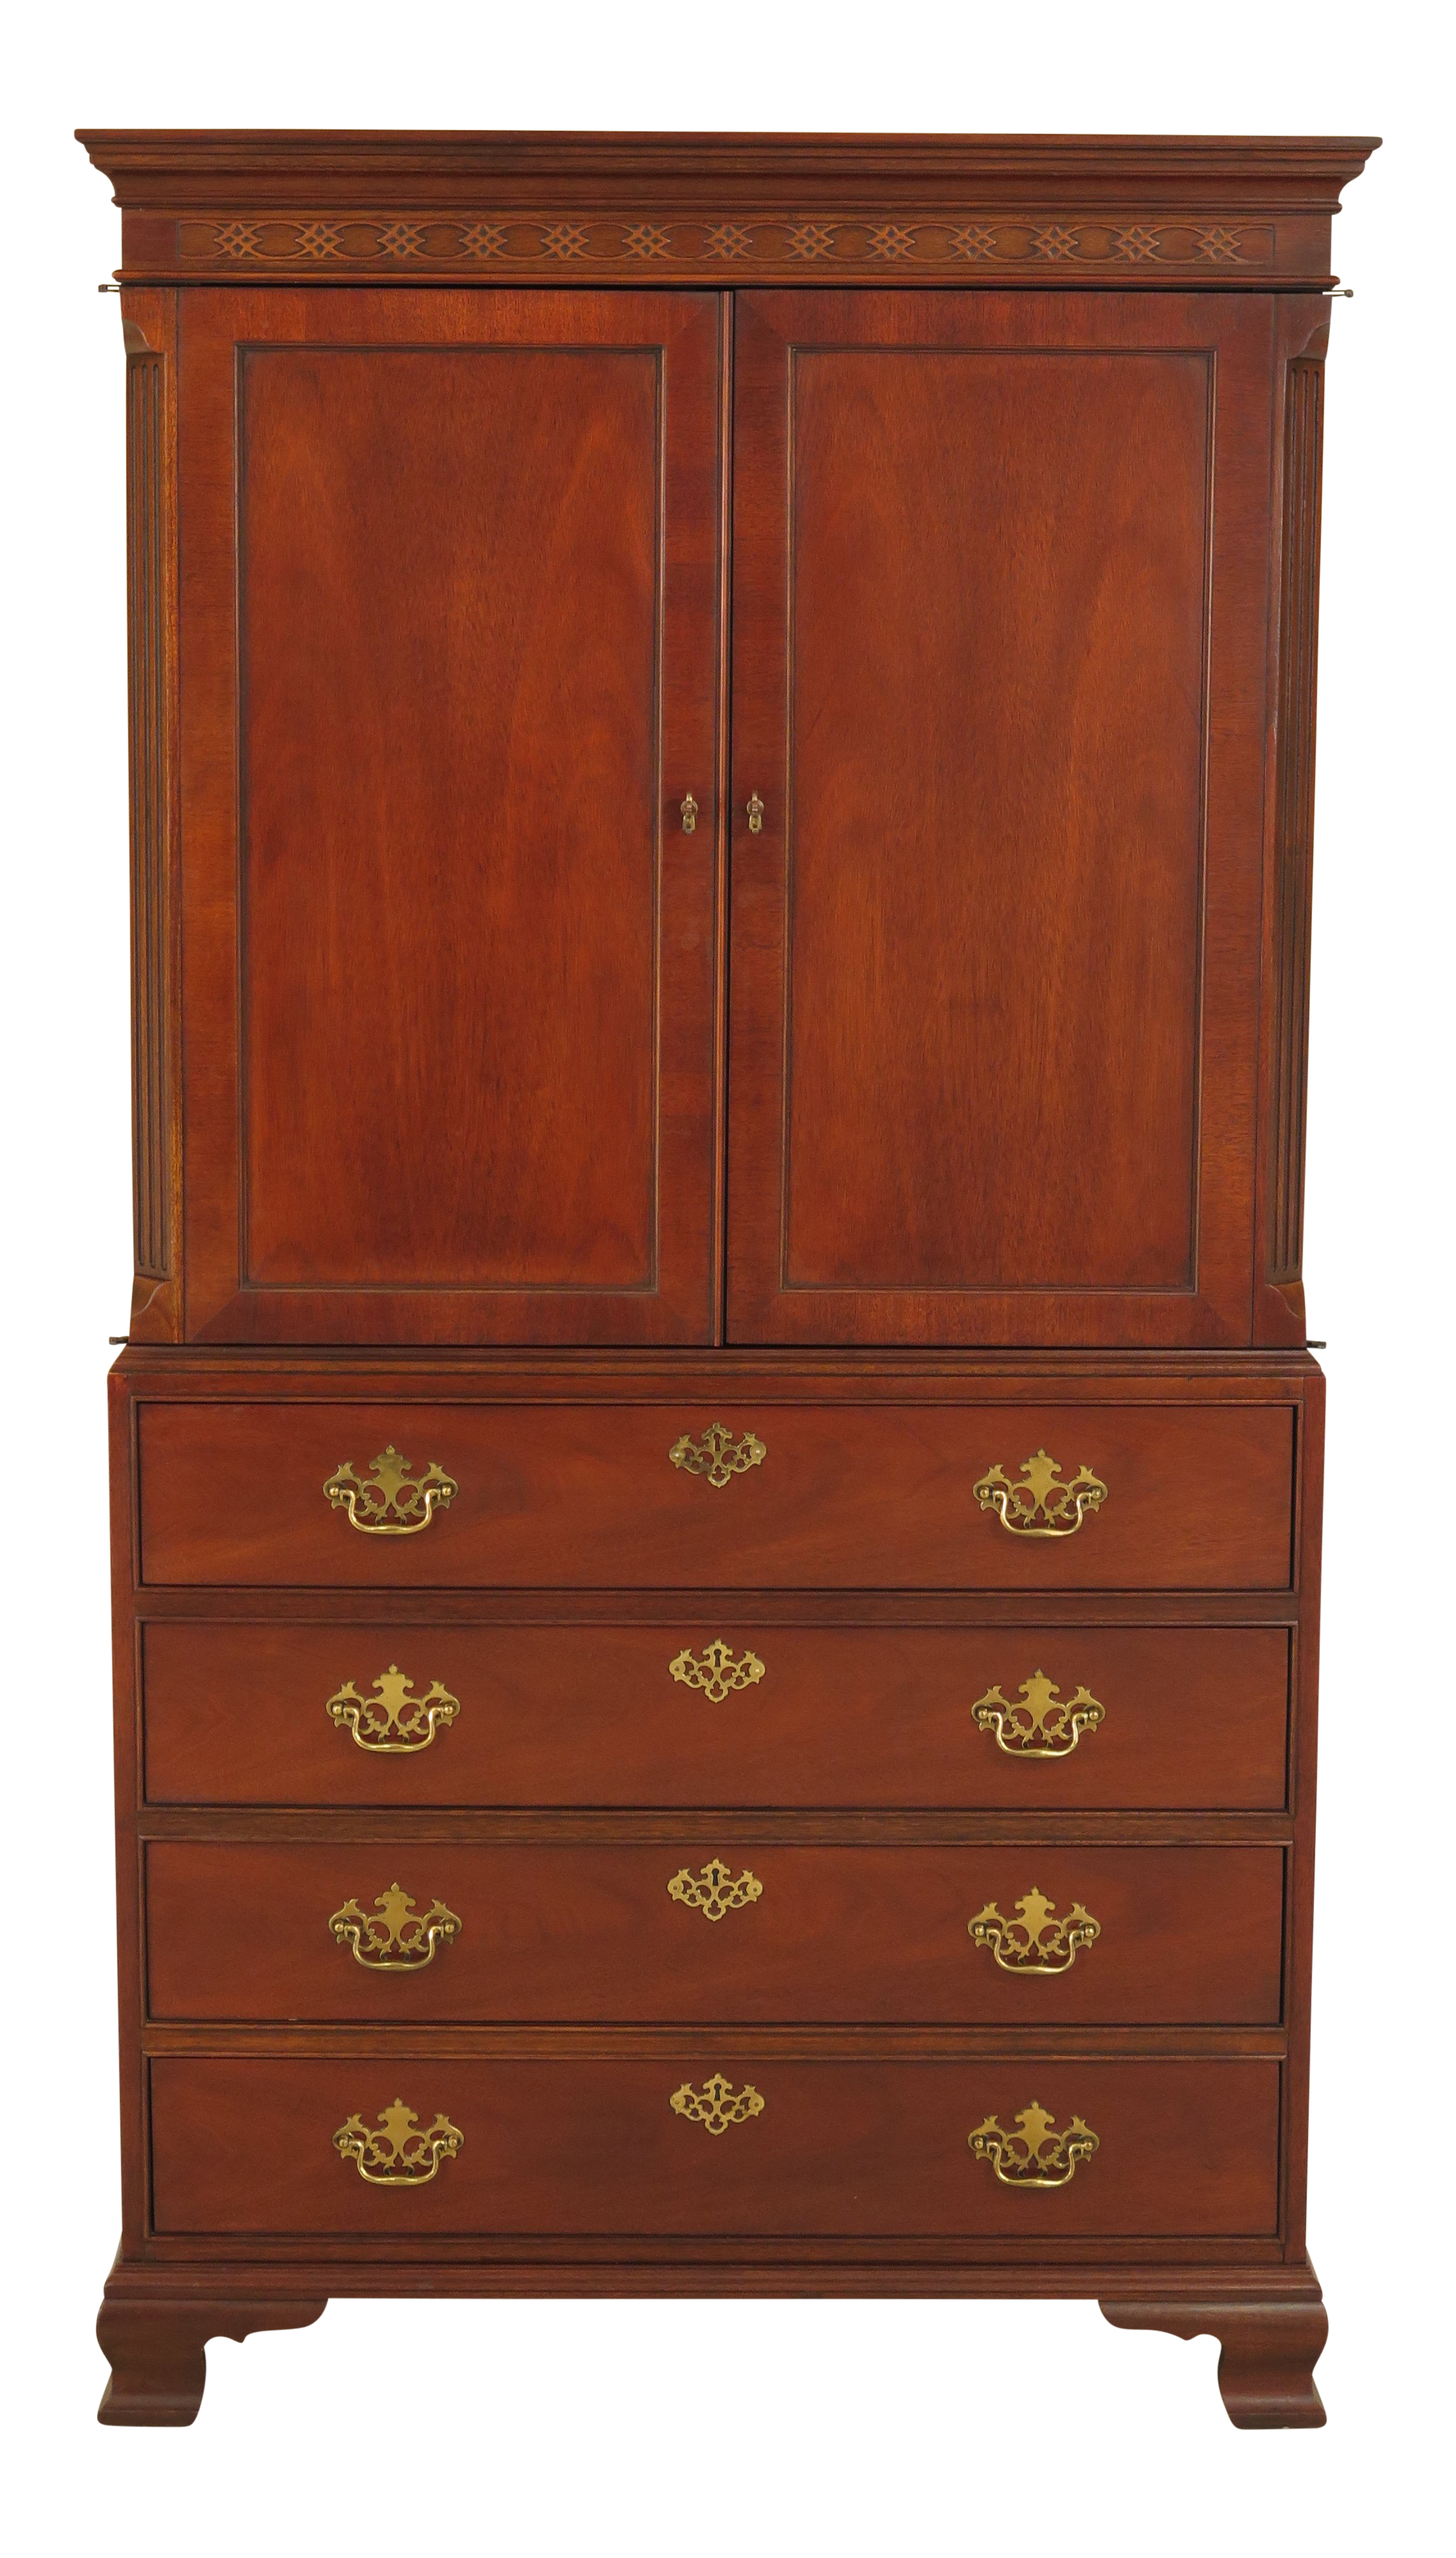 Baker Mahogany 2 Door Armoire Entertainment Cabinet  sc 1 st  Chairish & Baker Mahogany 2 Door Armoire Entertainment Cabinet | Chairish